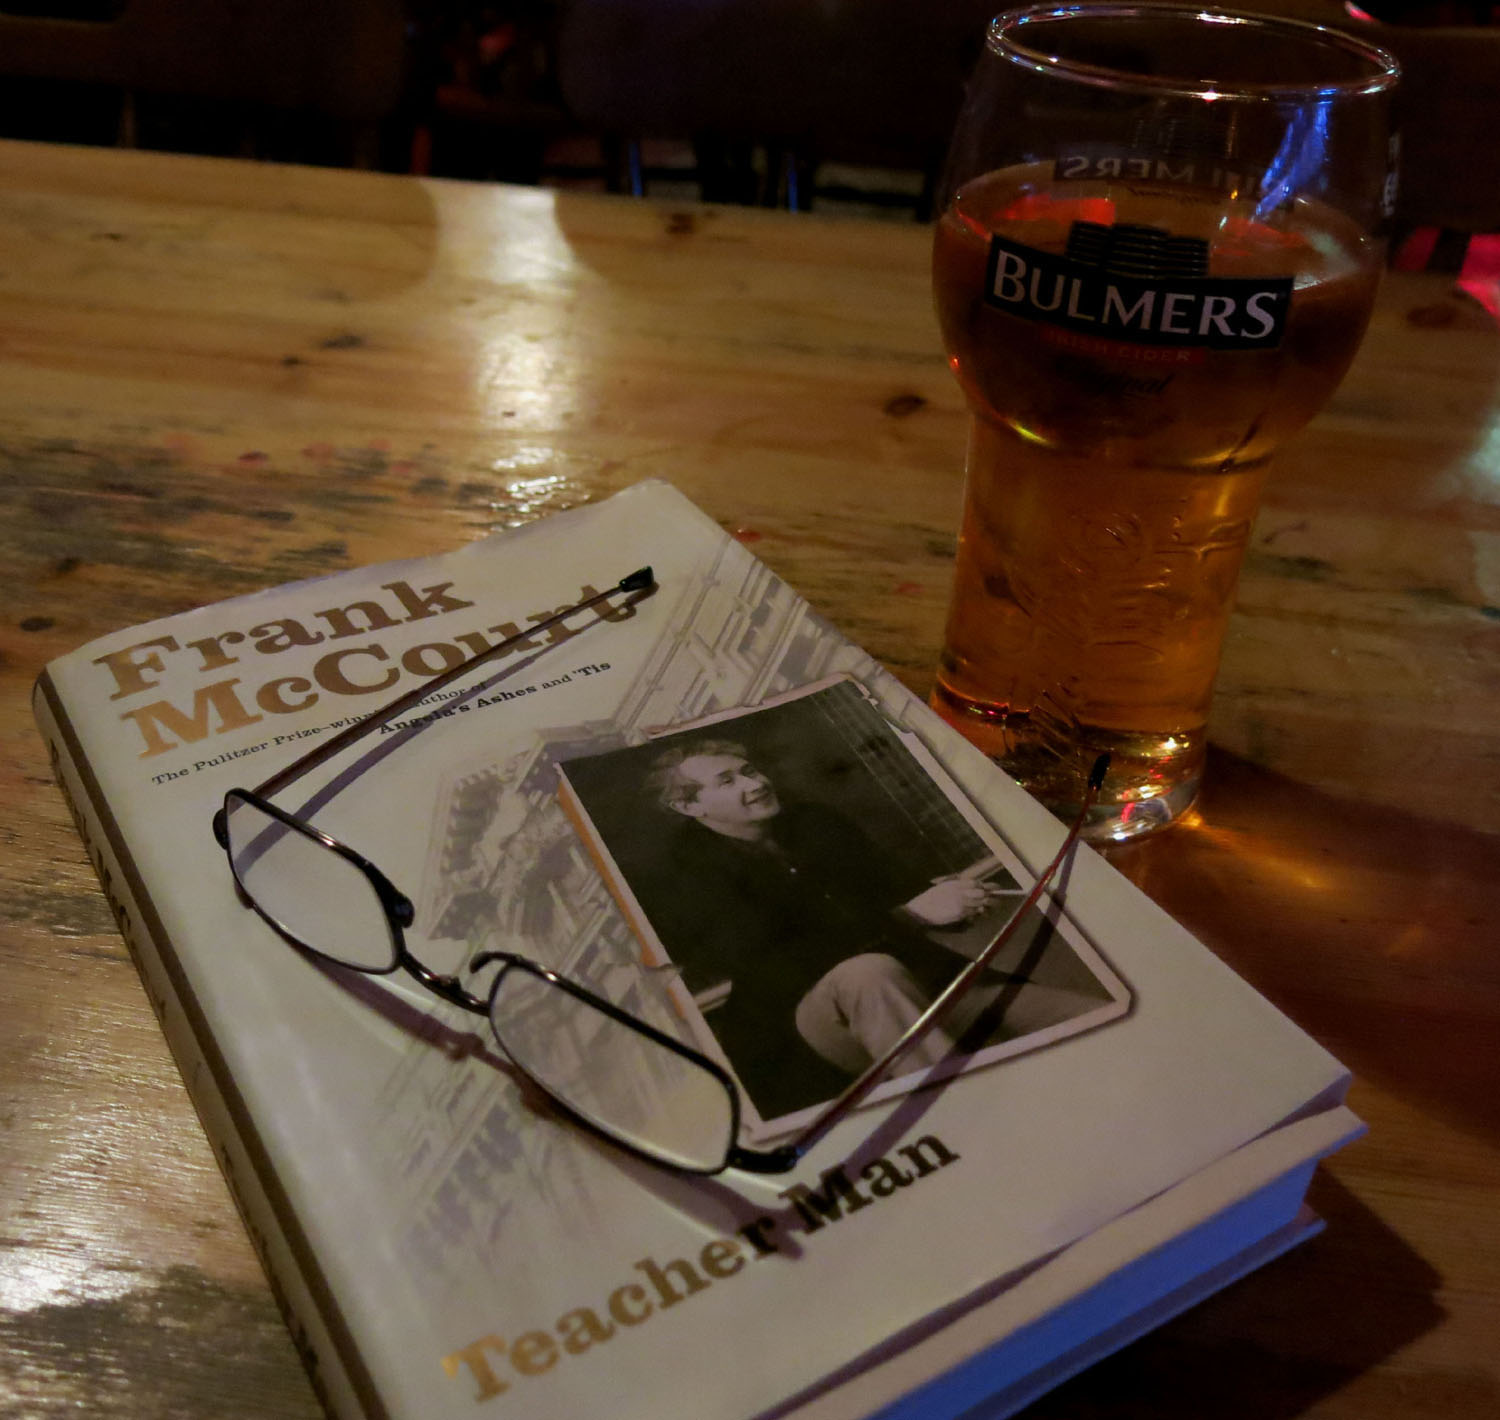 Ireland-Food-And-Drink-Cider-Frank-McCourt